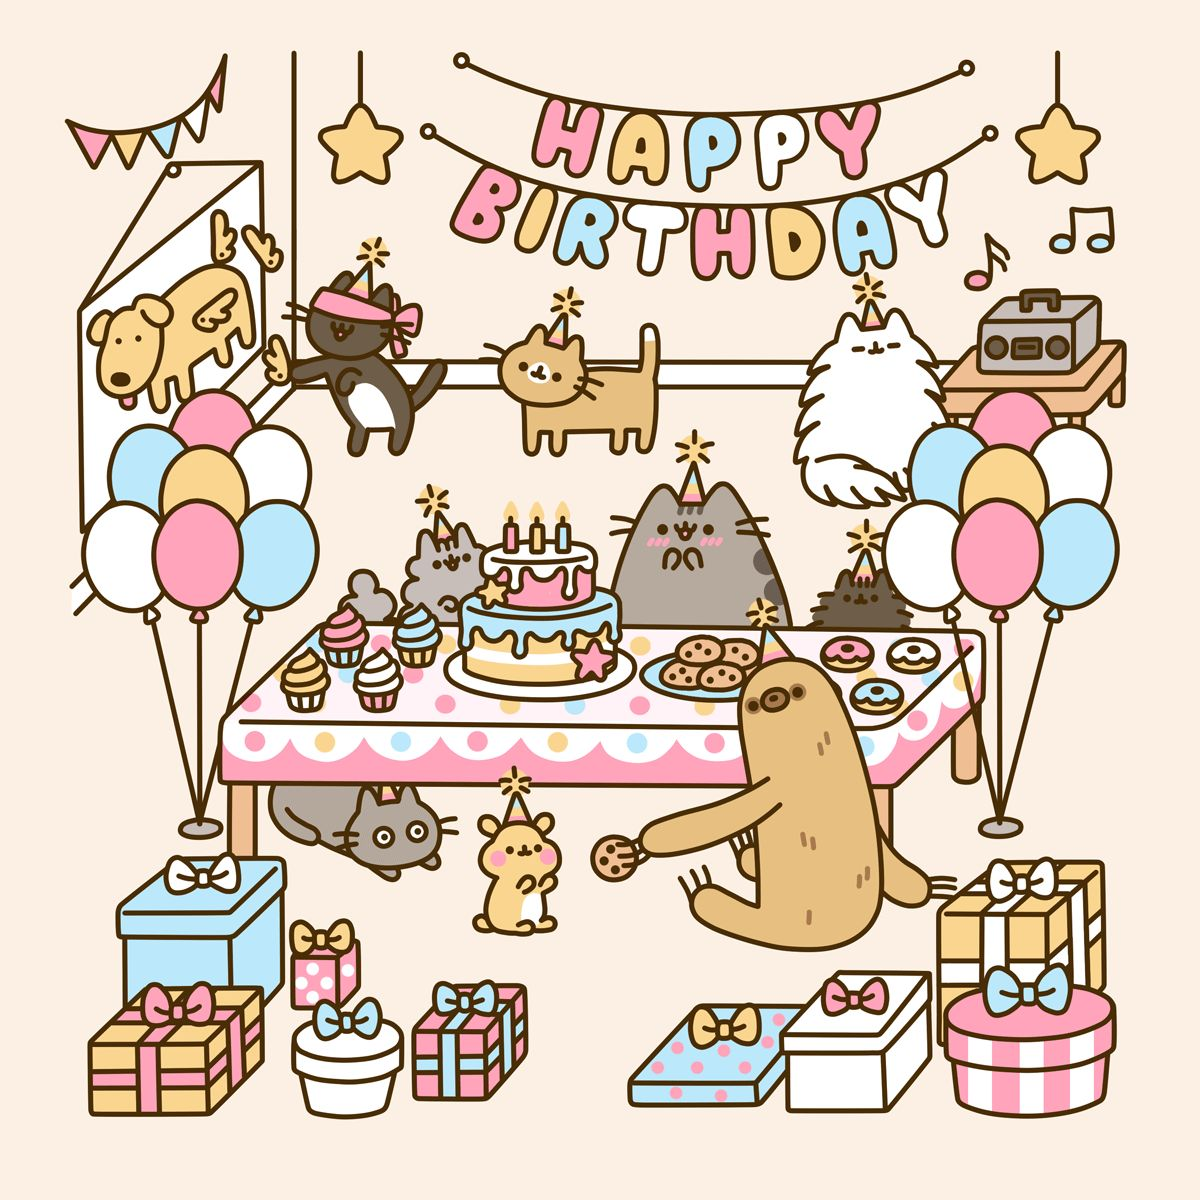 Cat's Birthday GIFs. 40 Animated Images For Free